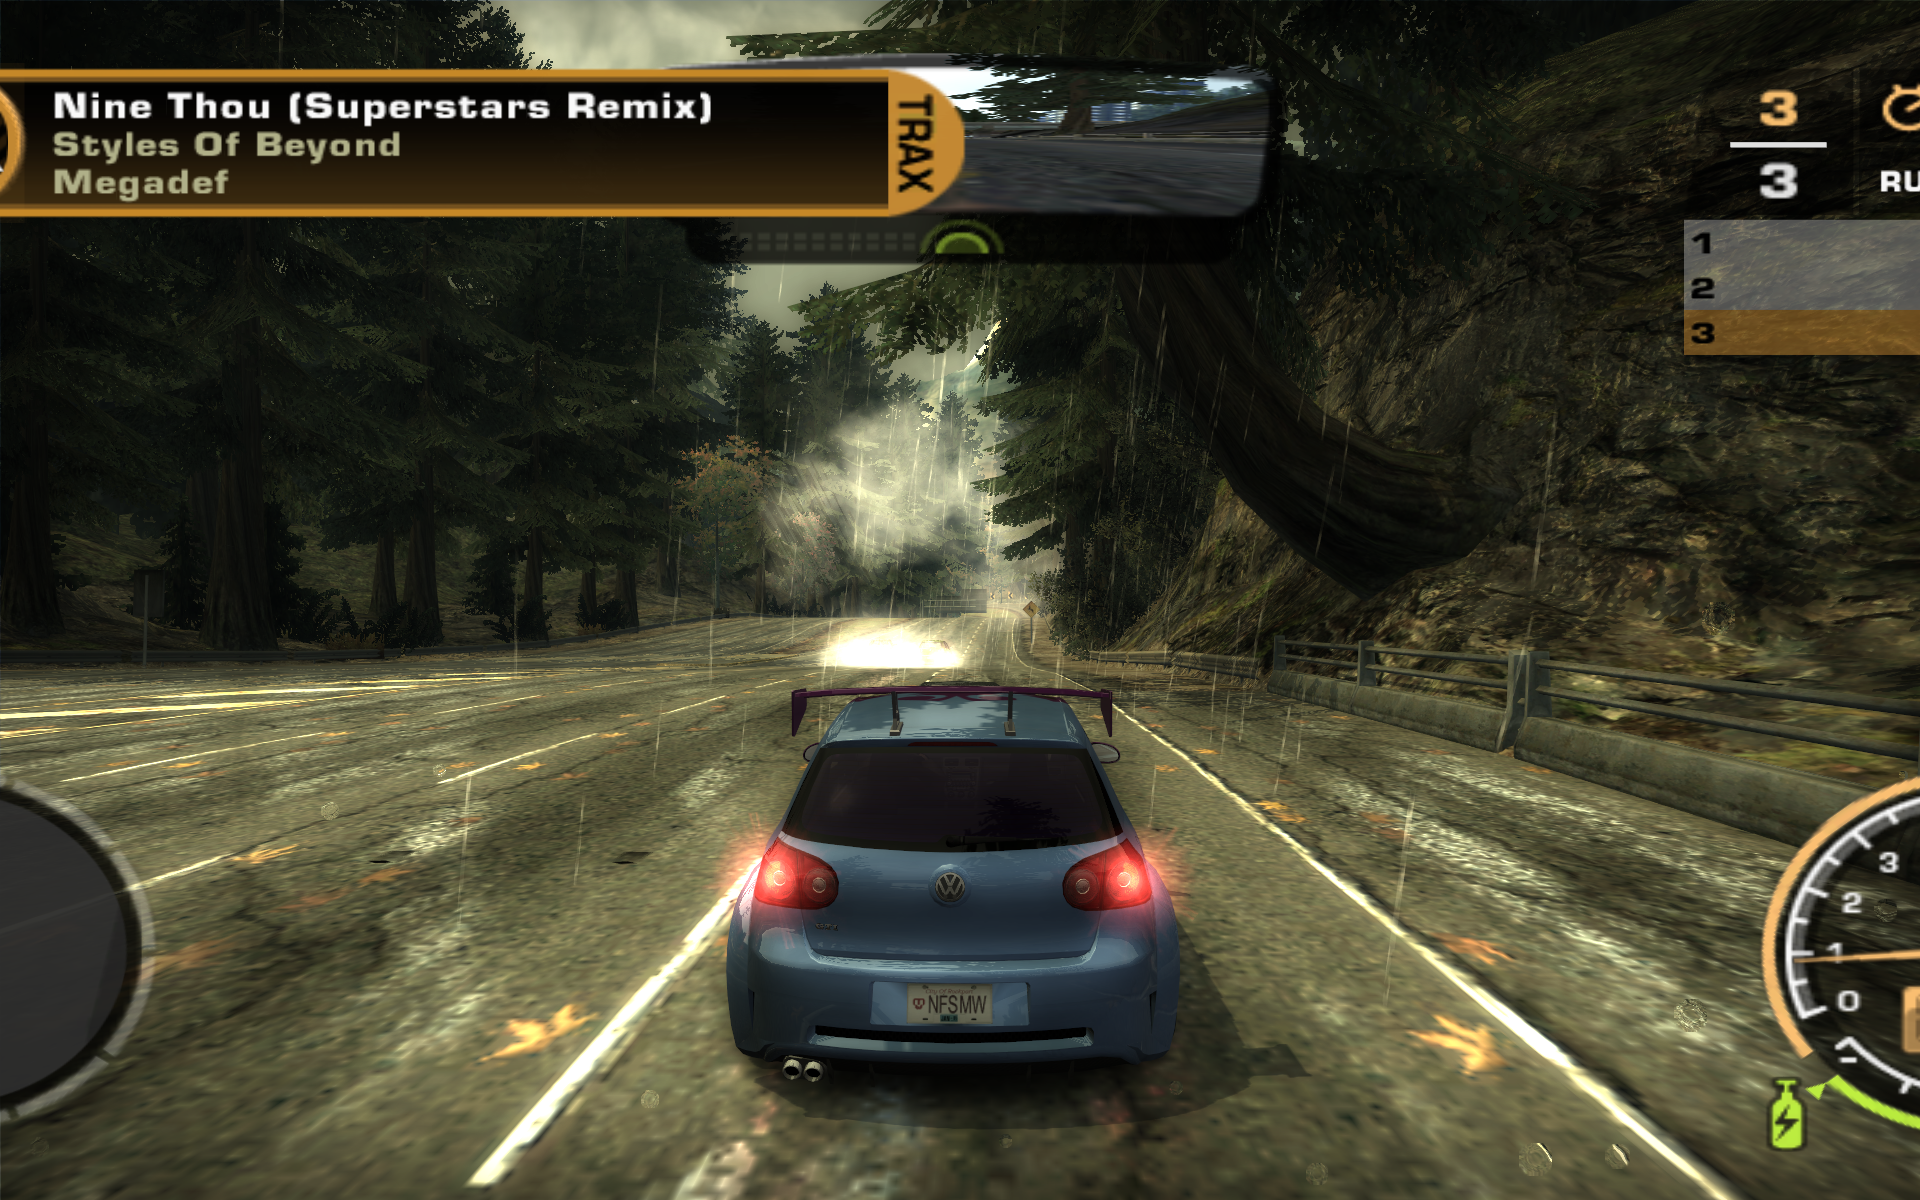 NFS MW] HUD partly out of screen · Issue #273 · ThirteenAG